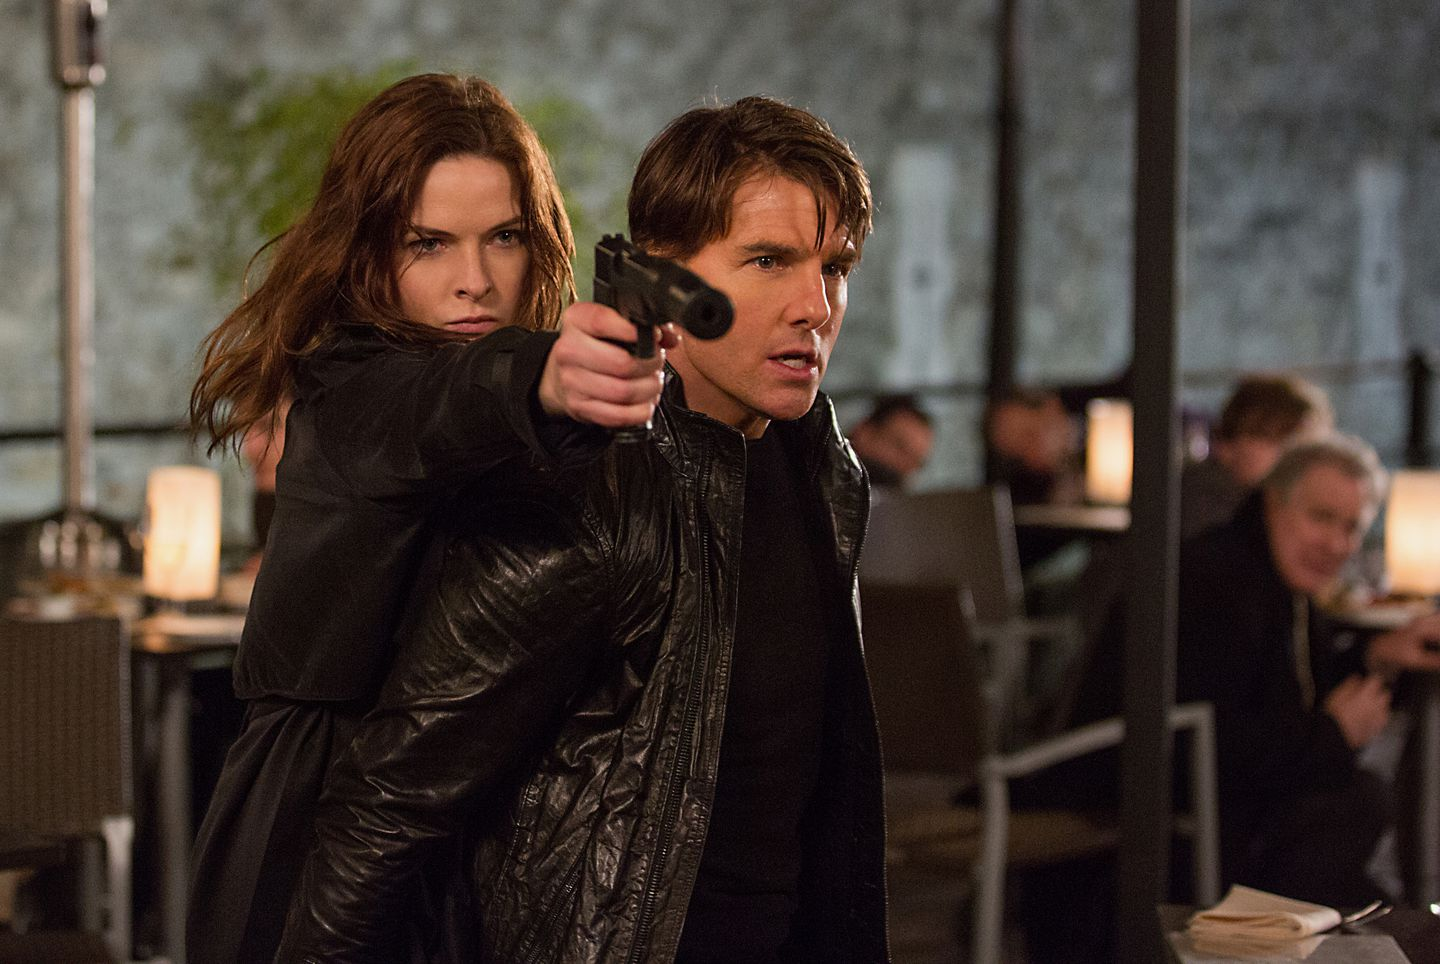 Mission: Impossible' climbs to No  1 at the movies - The